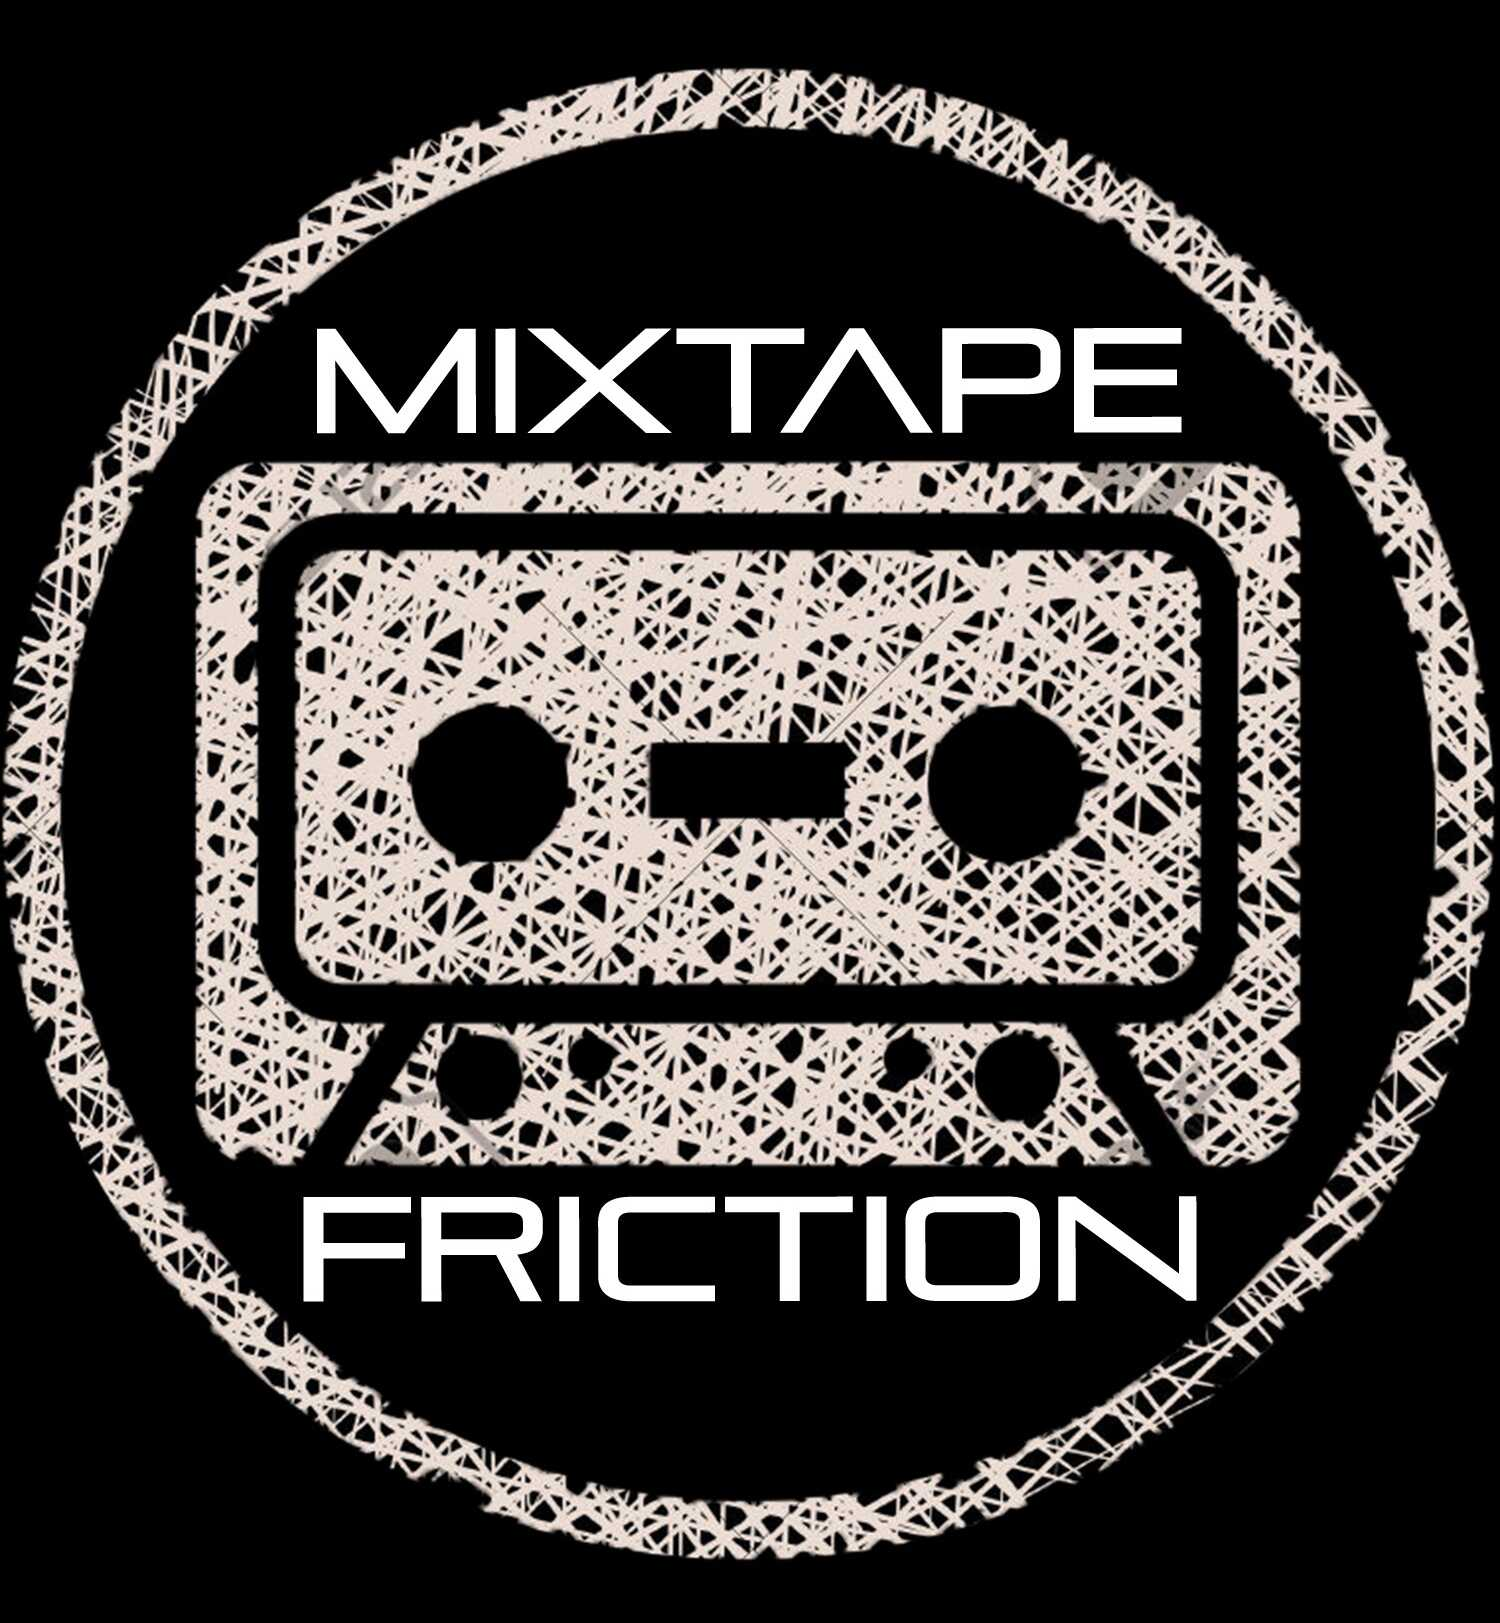 Mixtape Friction thumbnail image